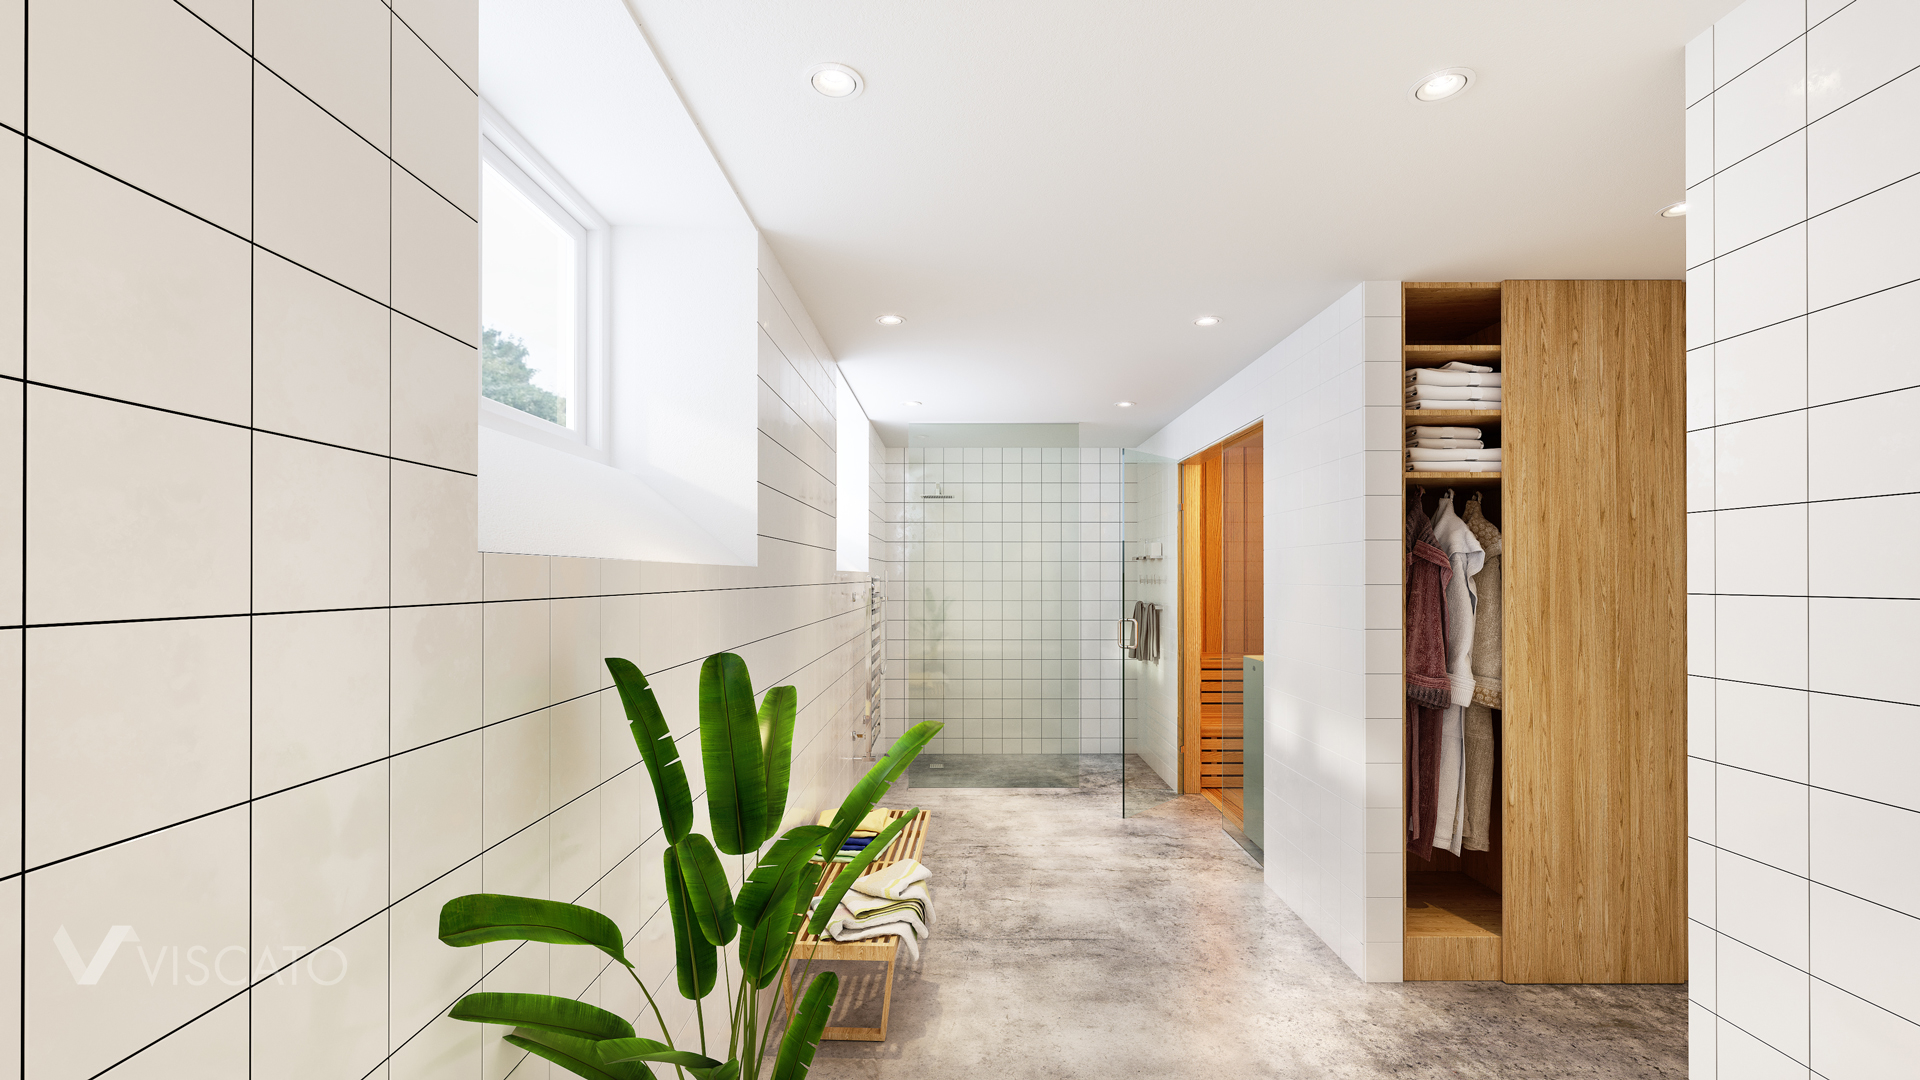 3D views of spacious bathroom with white tiles Viscato